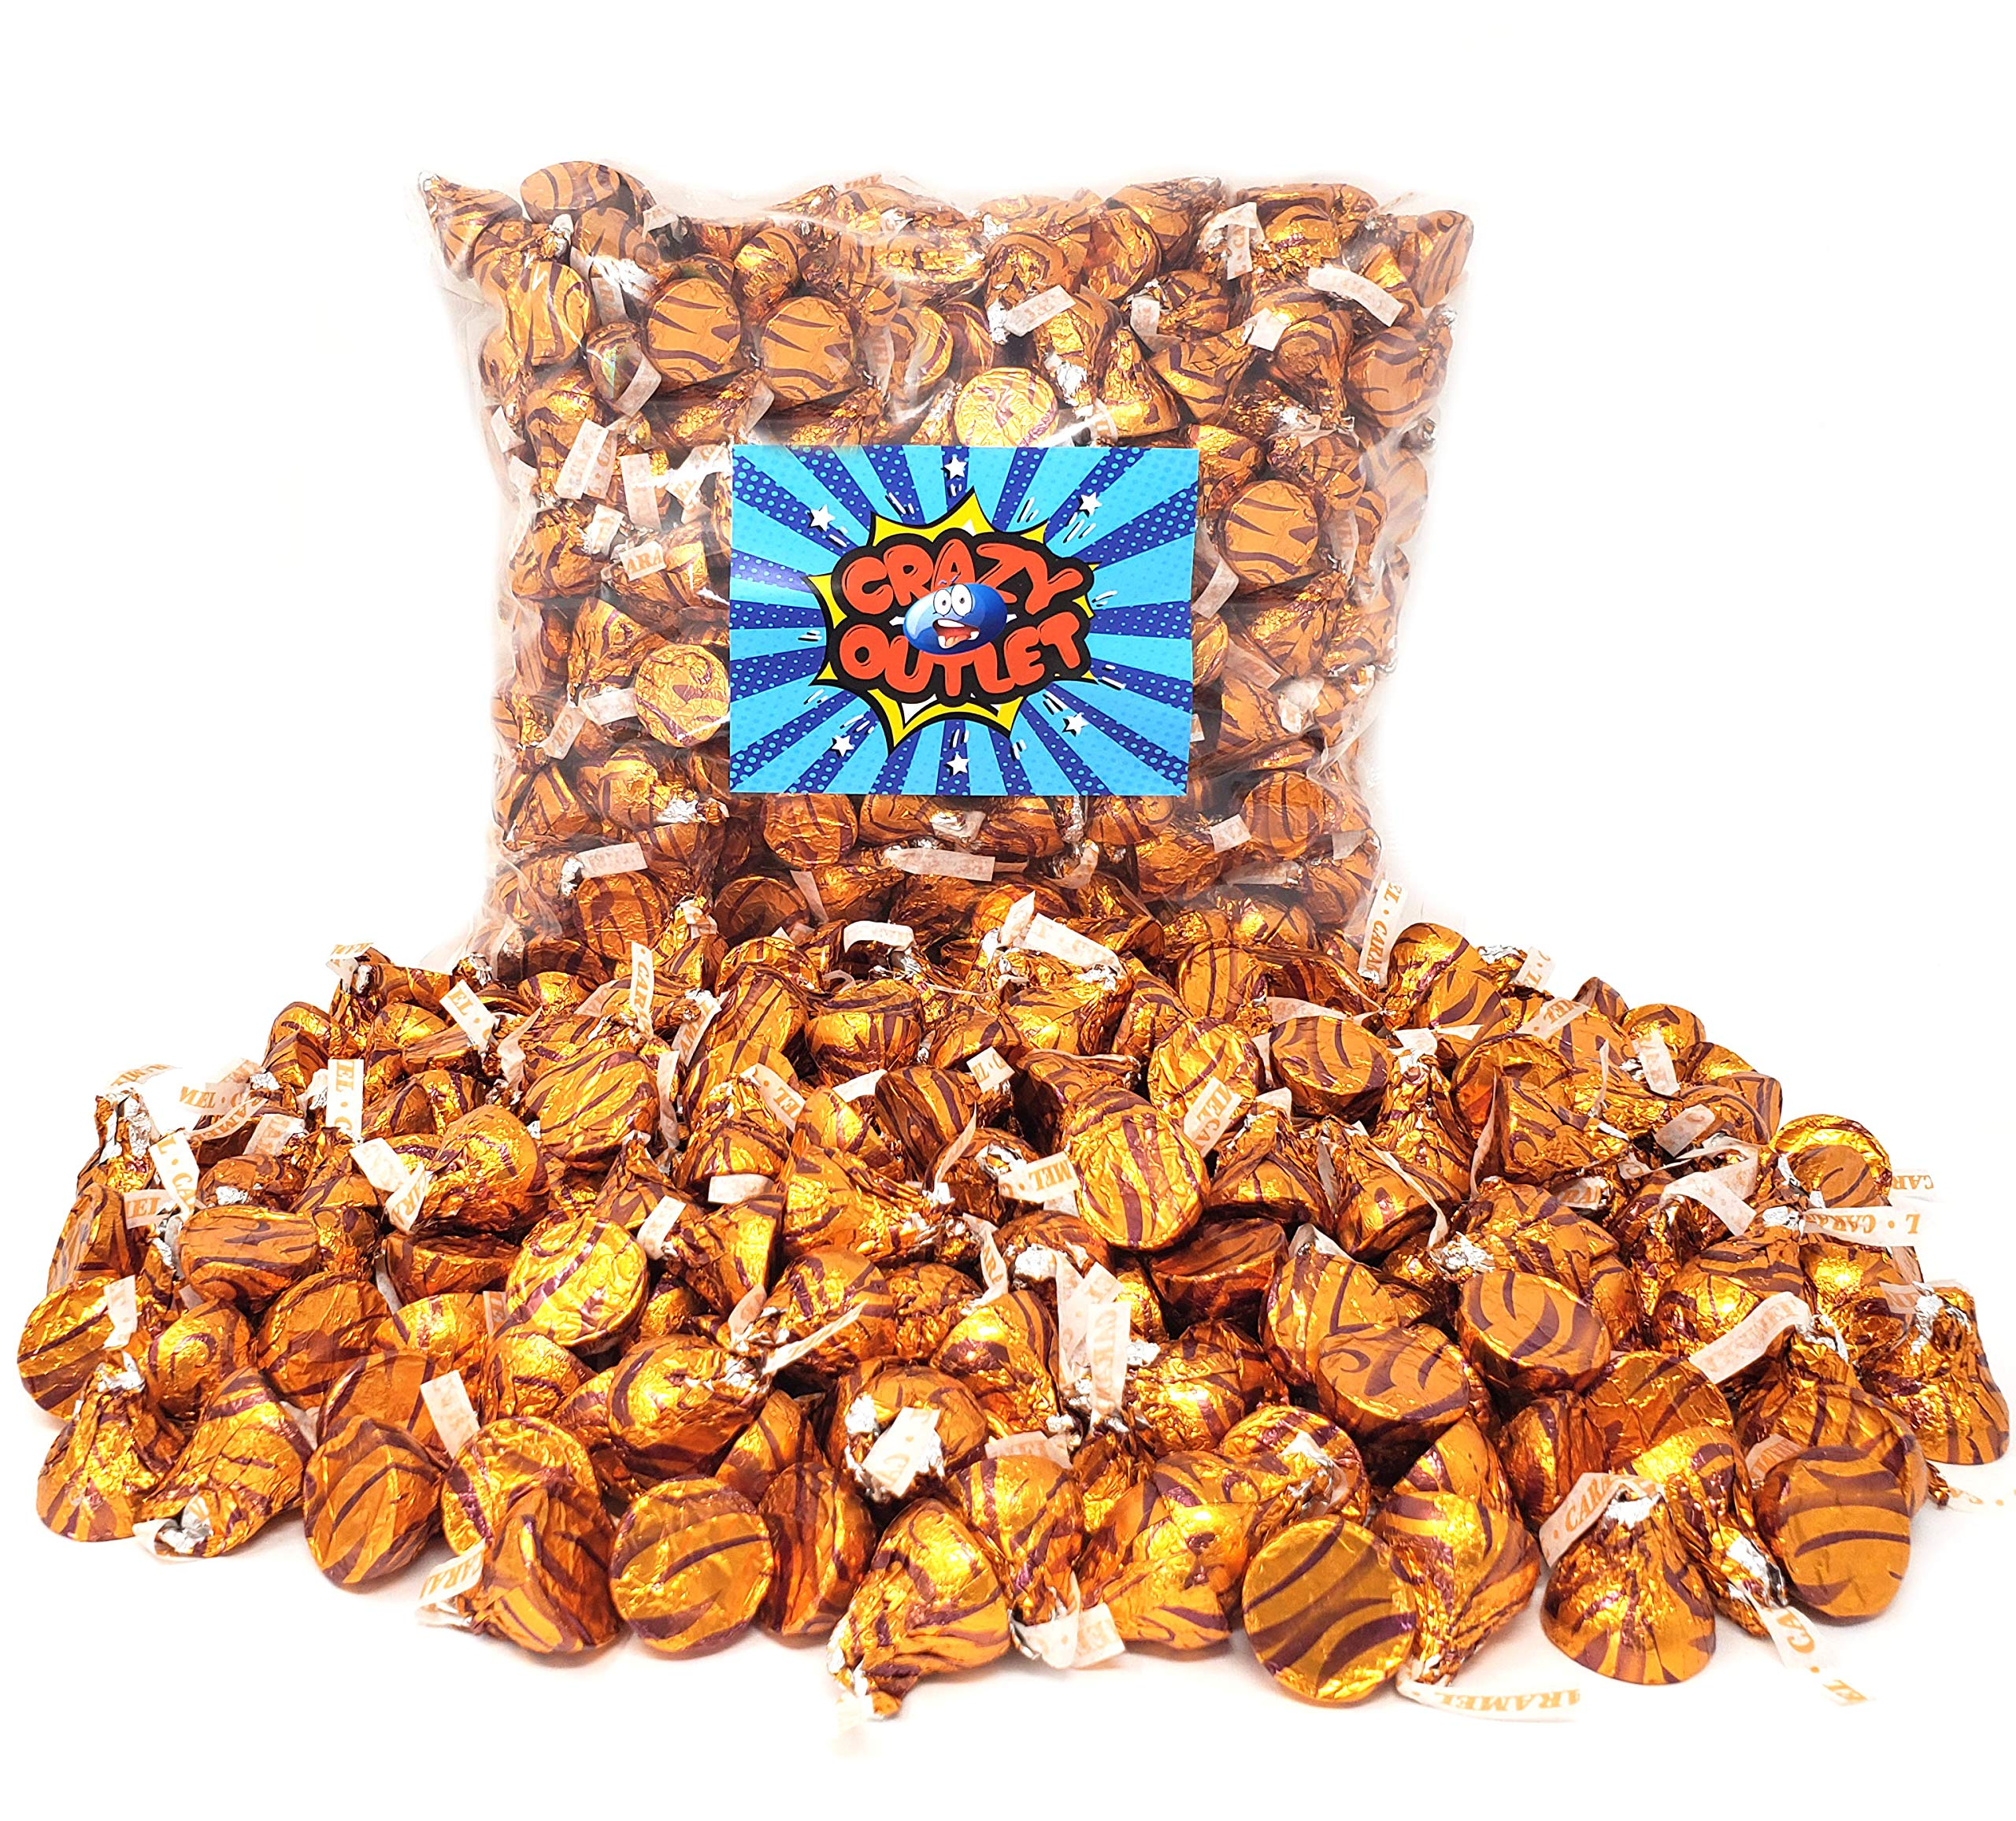 CrazyOutlet Pack - Hershey's Kisses Milk Chocolate Filled with Caramel Candy, Gold Foil Bulk Pack, 5 lbs by CRAZYOUTLET